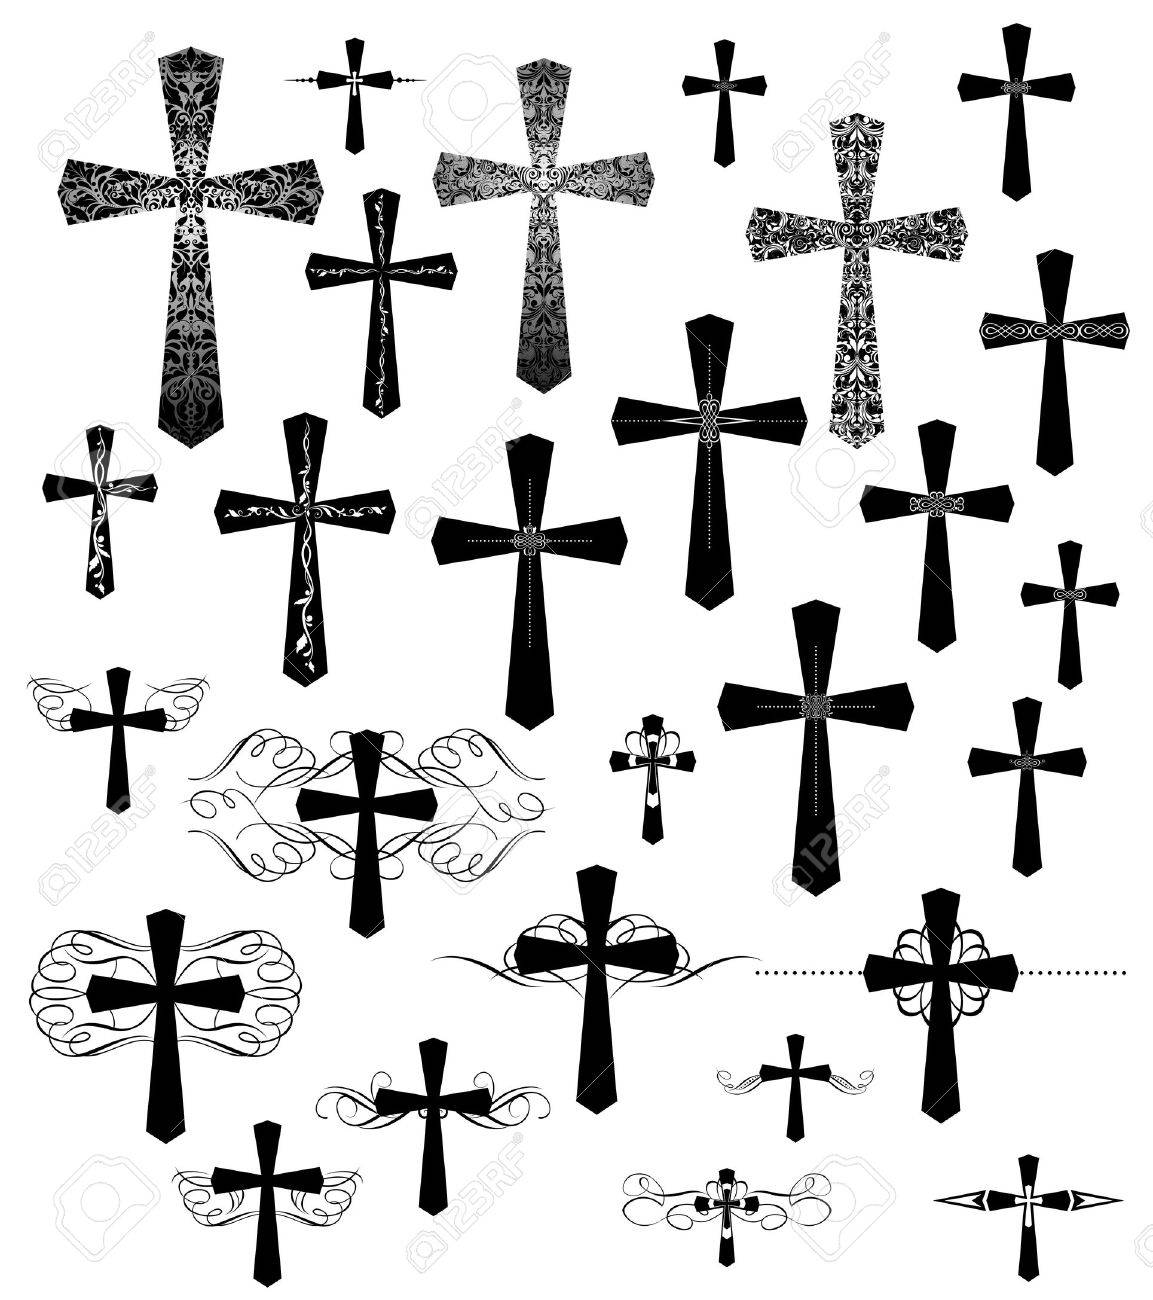 Set of vintage engraving crosses with flourishes - 51442145